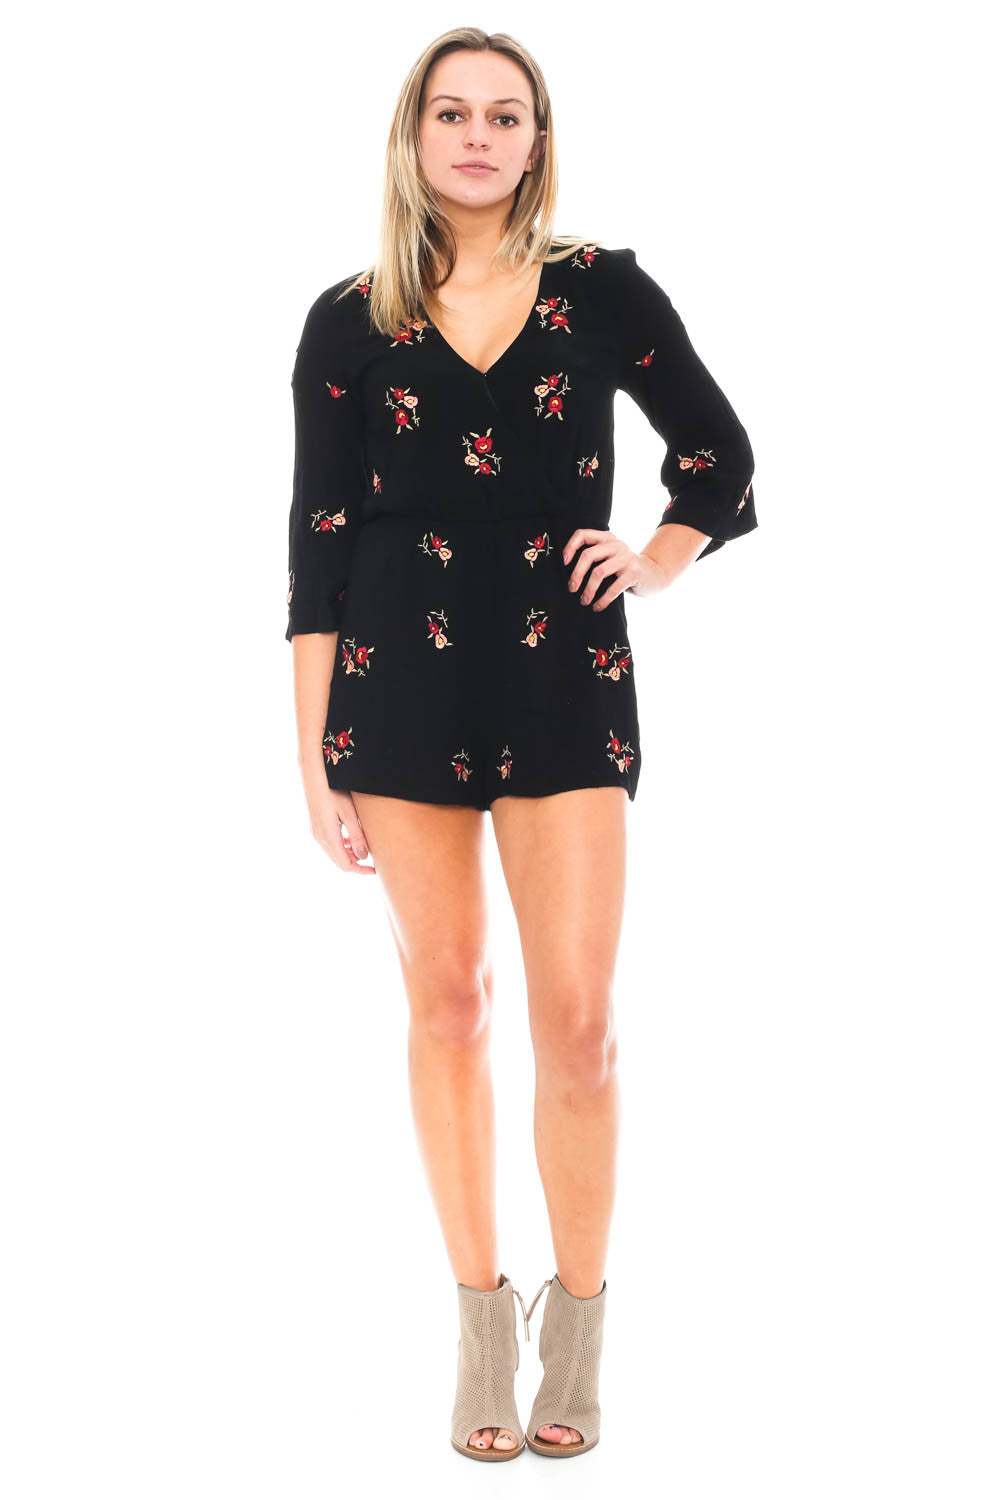 Romper - Floral Embroidered Flared Sleeve Romper